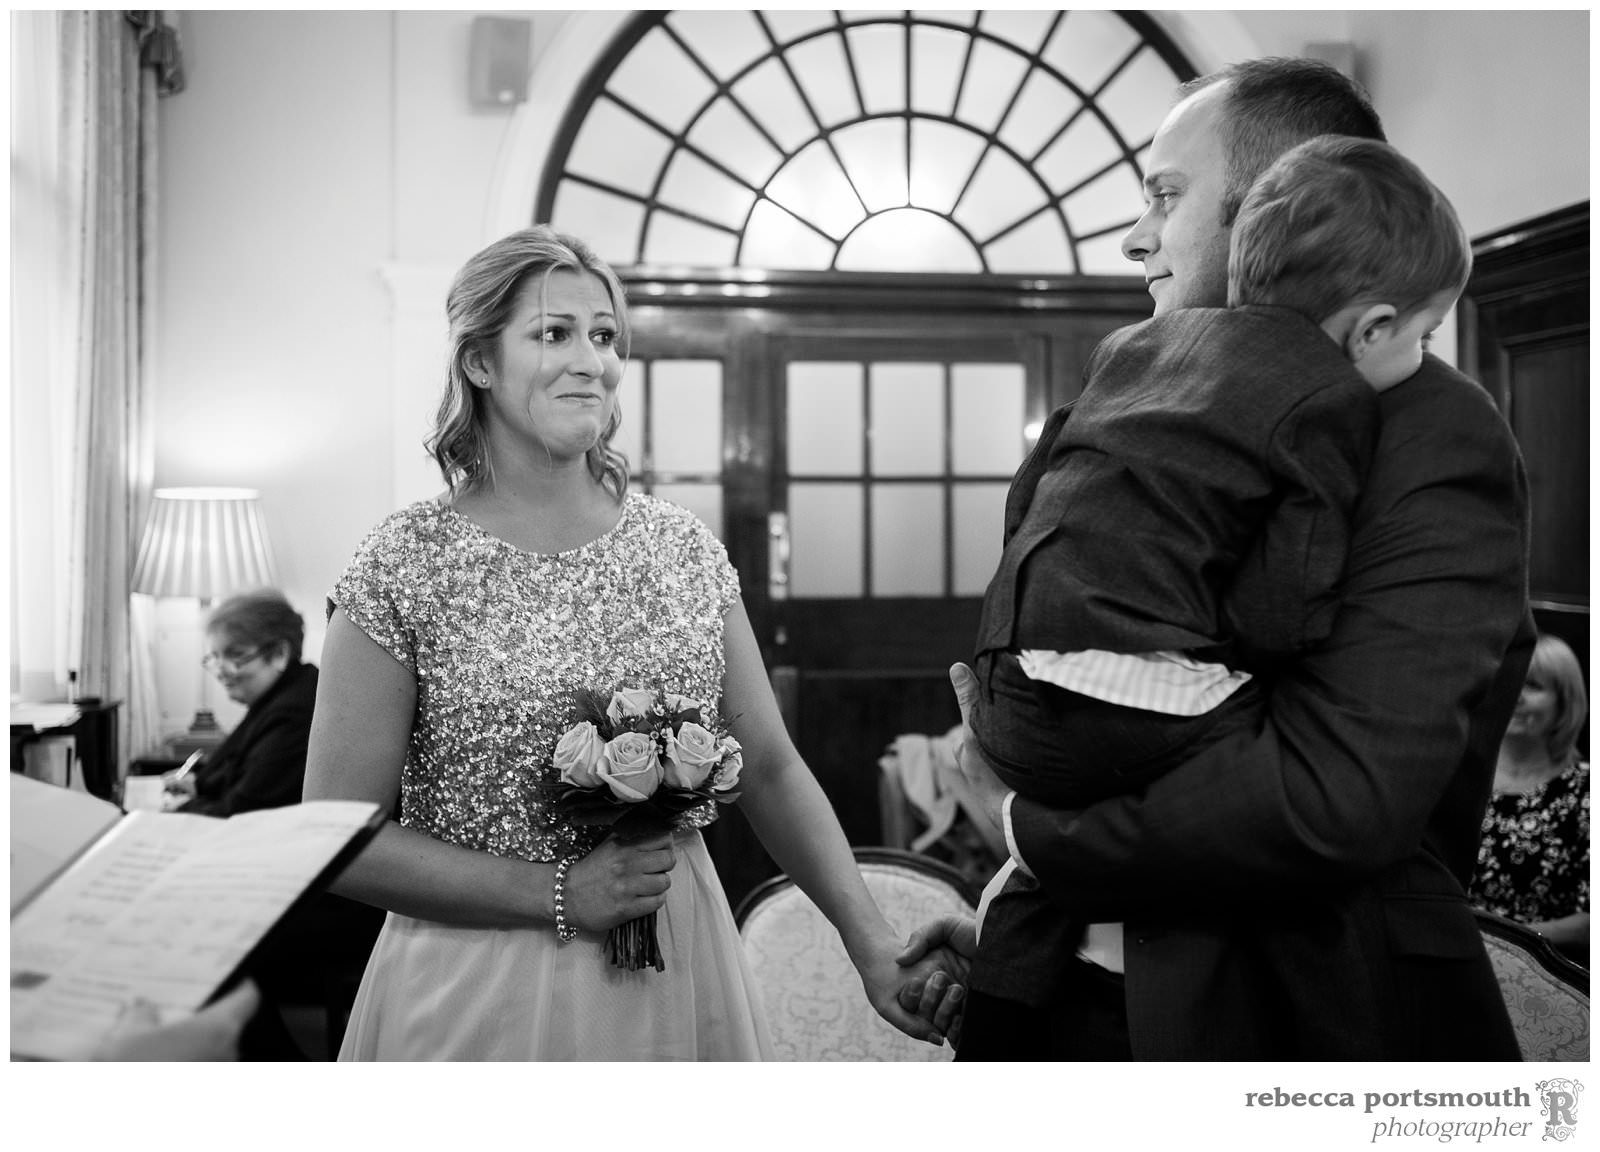 The Chelsea Registry Office wedding photos of Victoria + Dominic: an emotional moment during their ceremony in the Rossetti Room